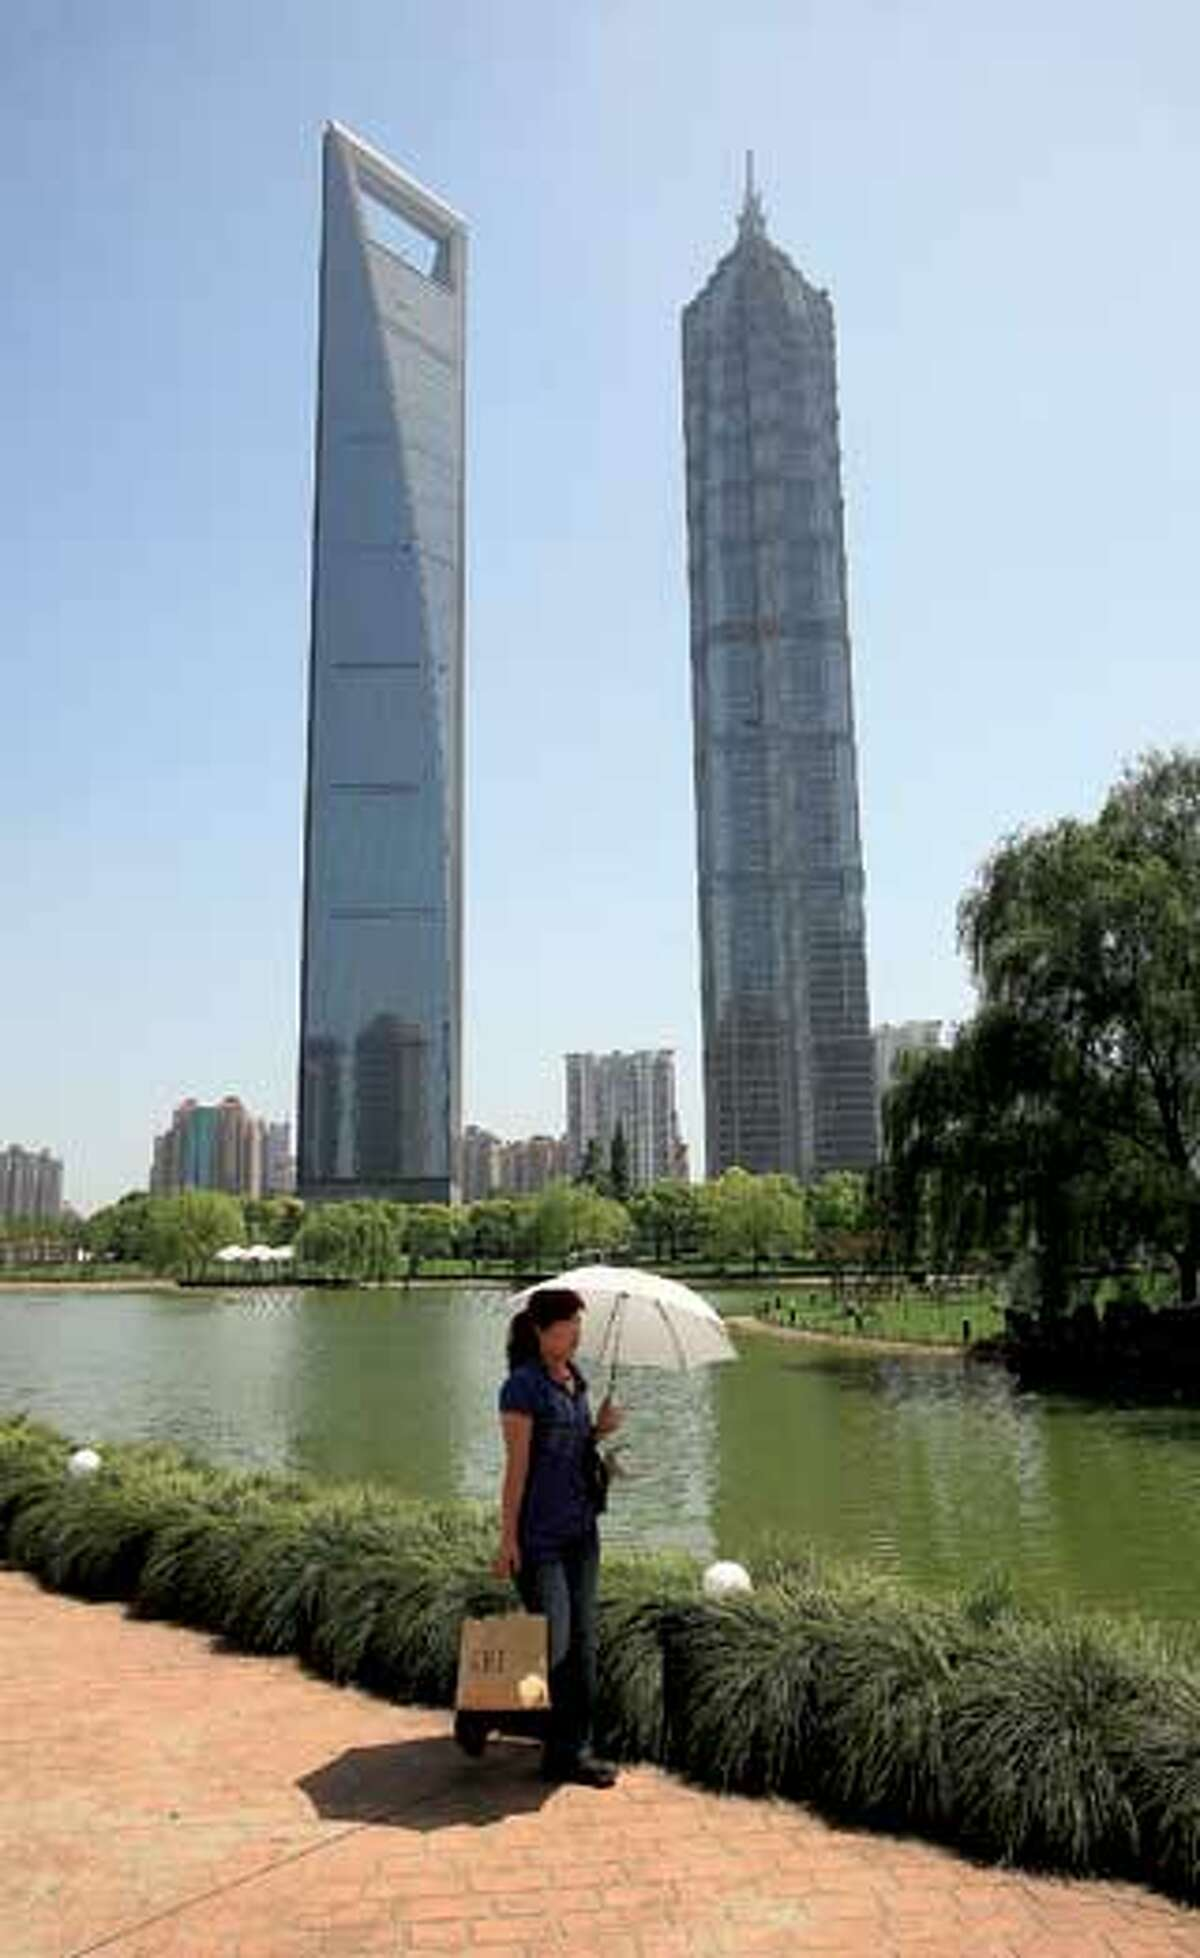 The 53rd to 87th floors of Jin Mao Tower, right, are occupied by the Grand Hyatt Shanghai, the highest hotel in the world. The Shanghai World Financial Center is the other tall building. (AP Photo)